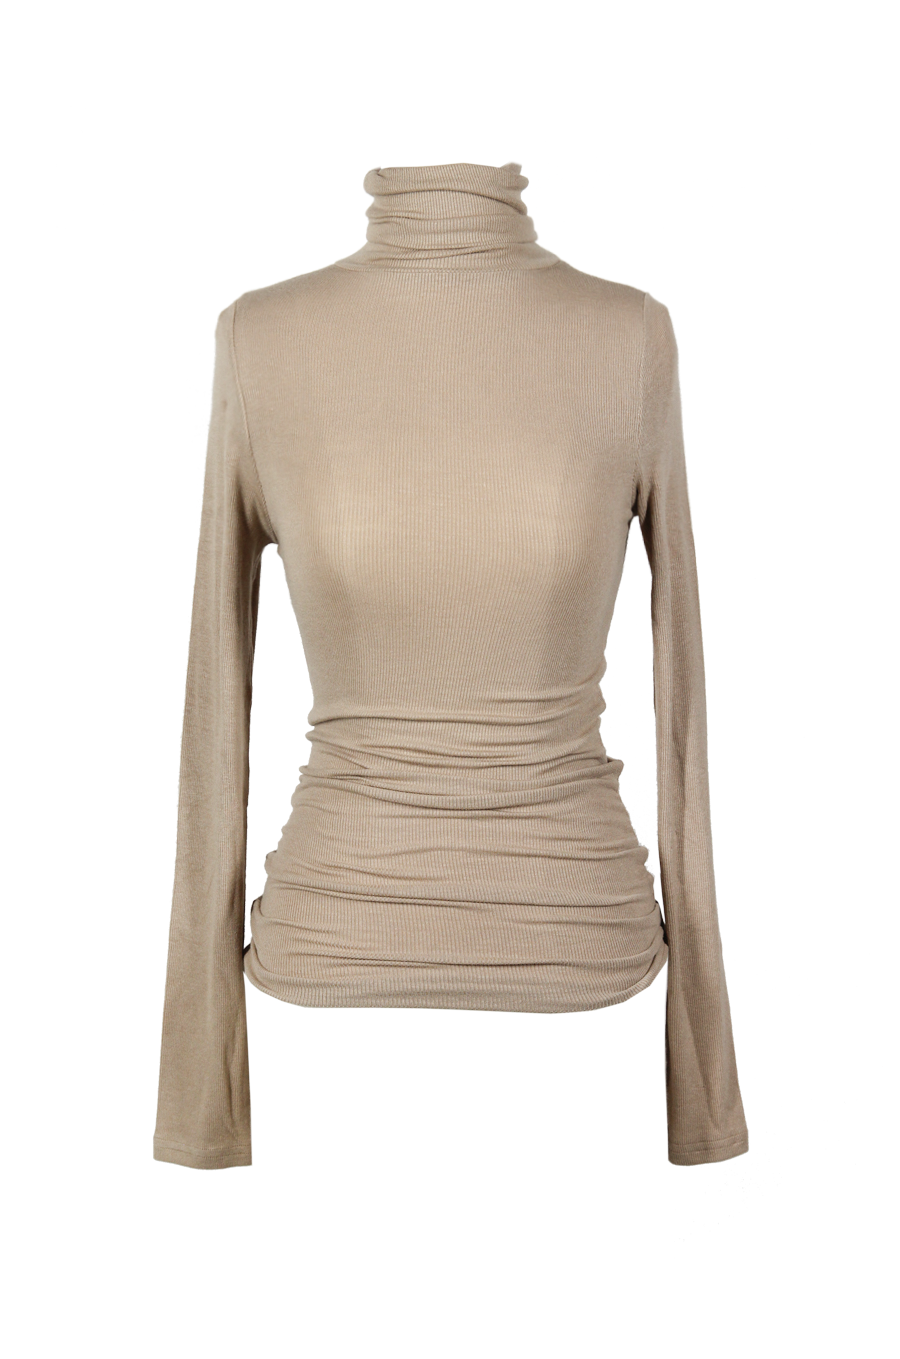 OLIVIA NZ Store online | Ribbed High Neck Top / Beige